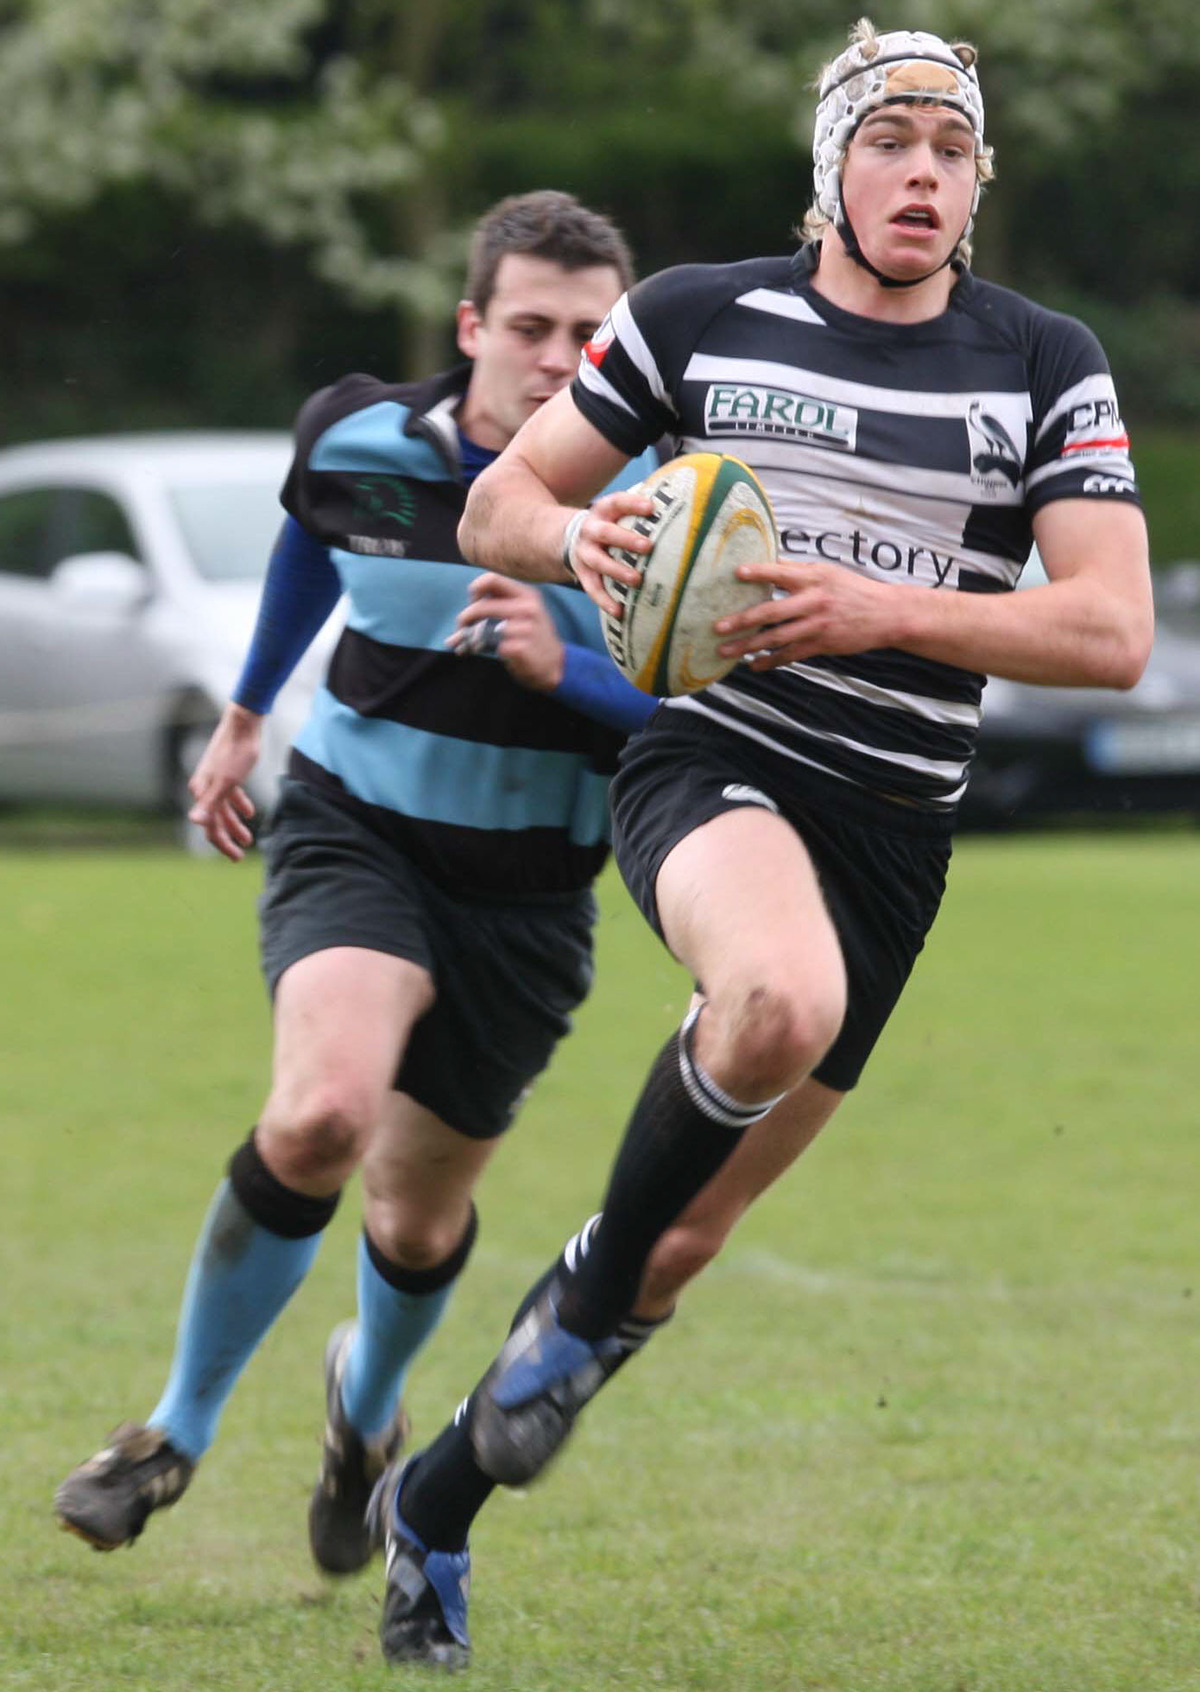 Chris Elder scored two tries for London Welsh